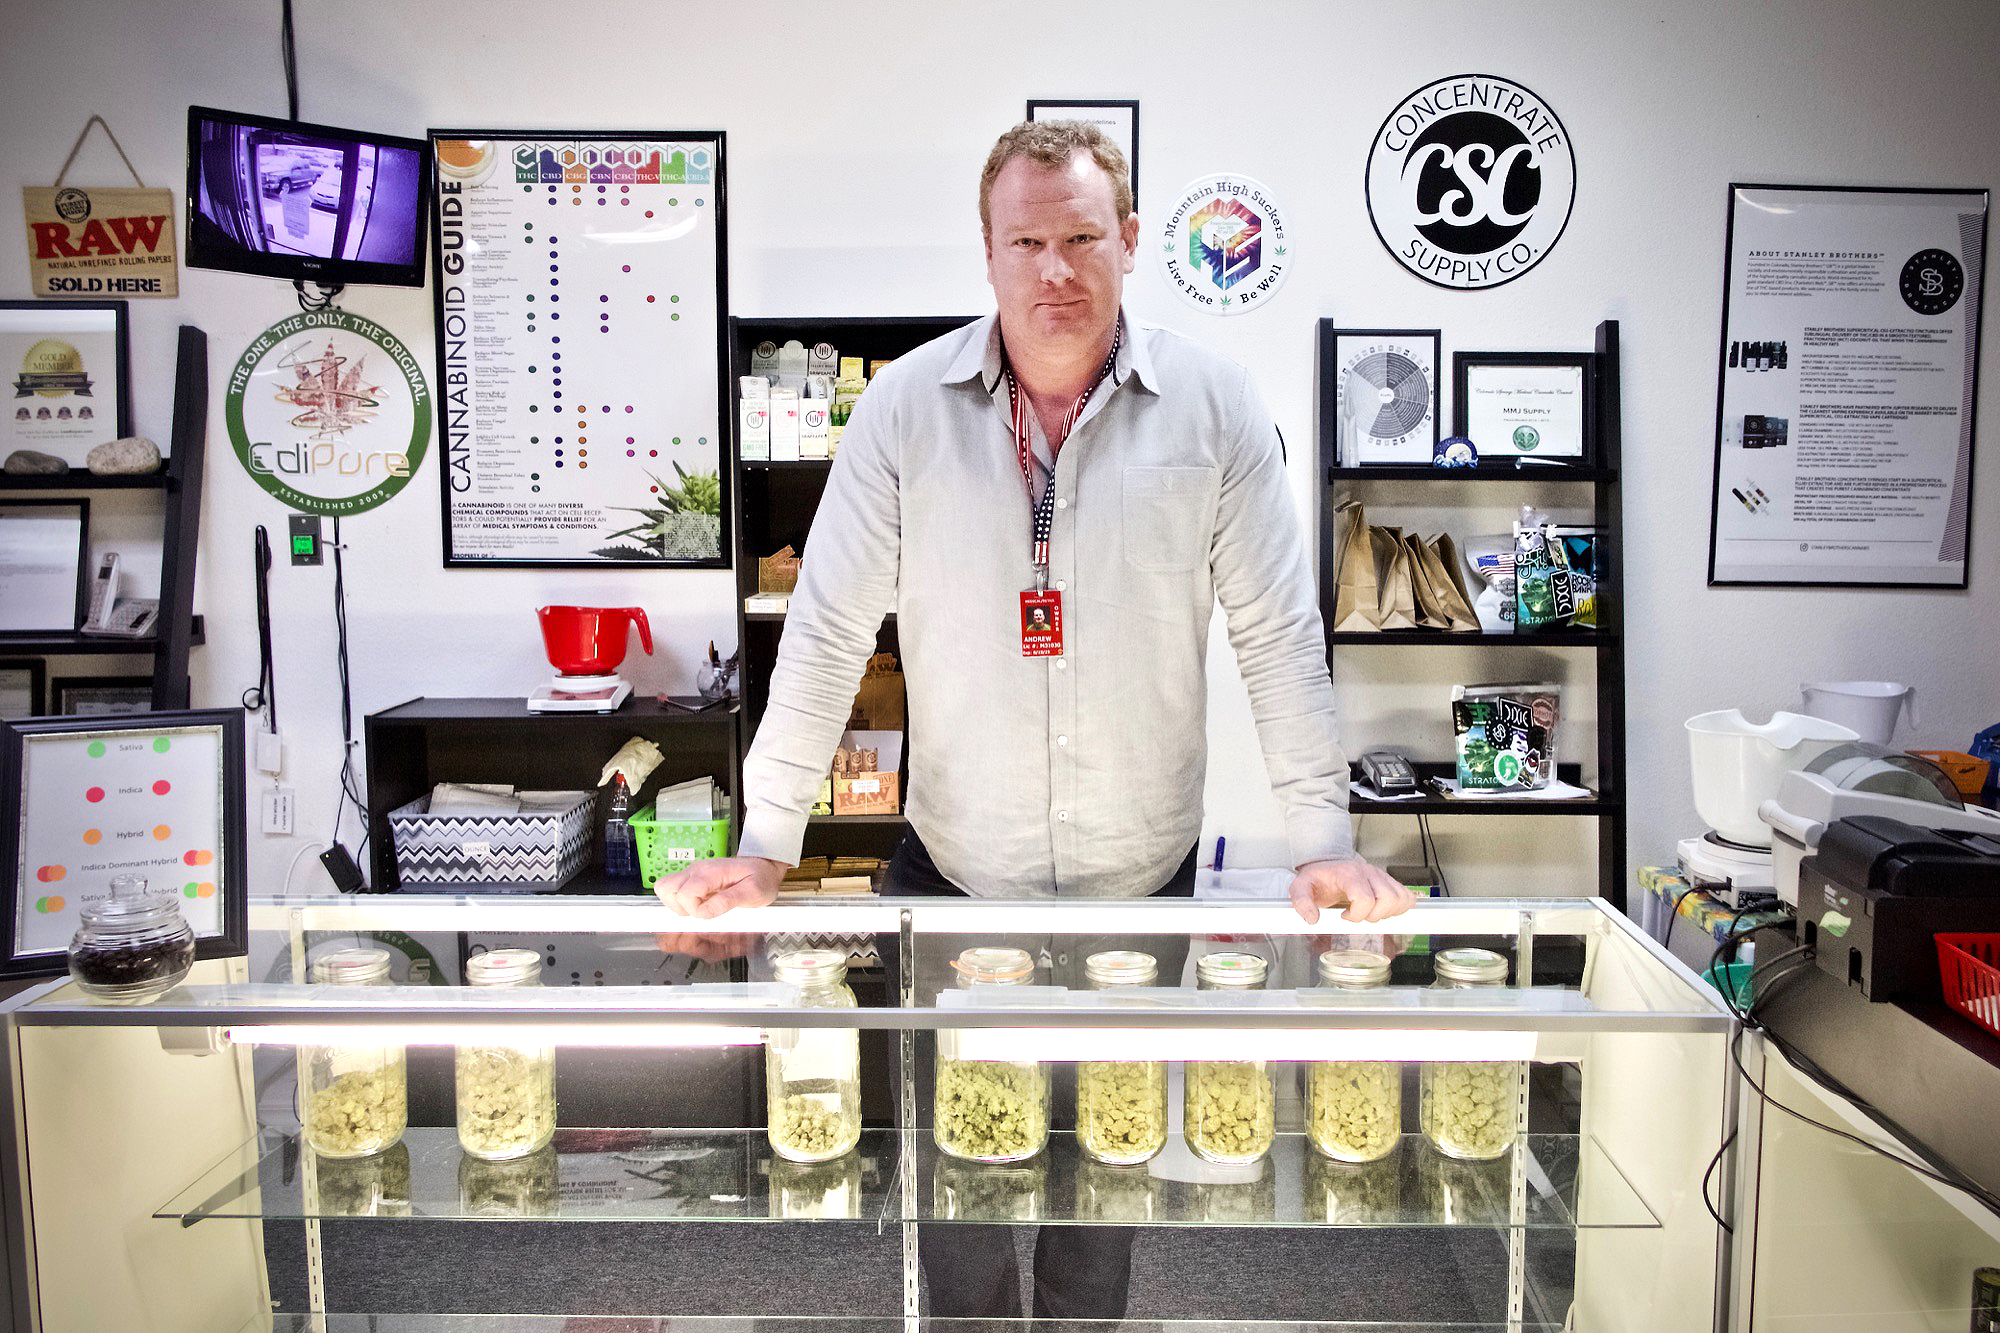 Andrew Heaton runs the medical marijuana dispensary WTJ MMJ Supply in Colorado Springs. He said he believes legal recreational marijuana in the city could actuallydeter active duty soldiers from using pot.